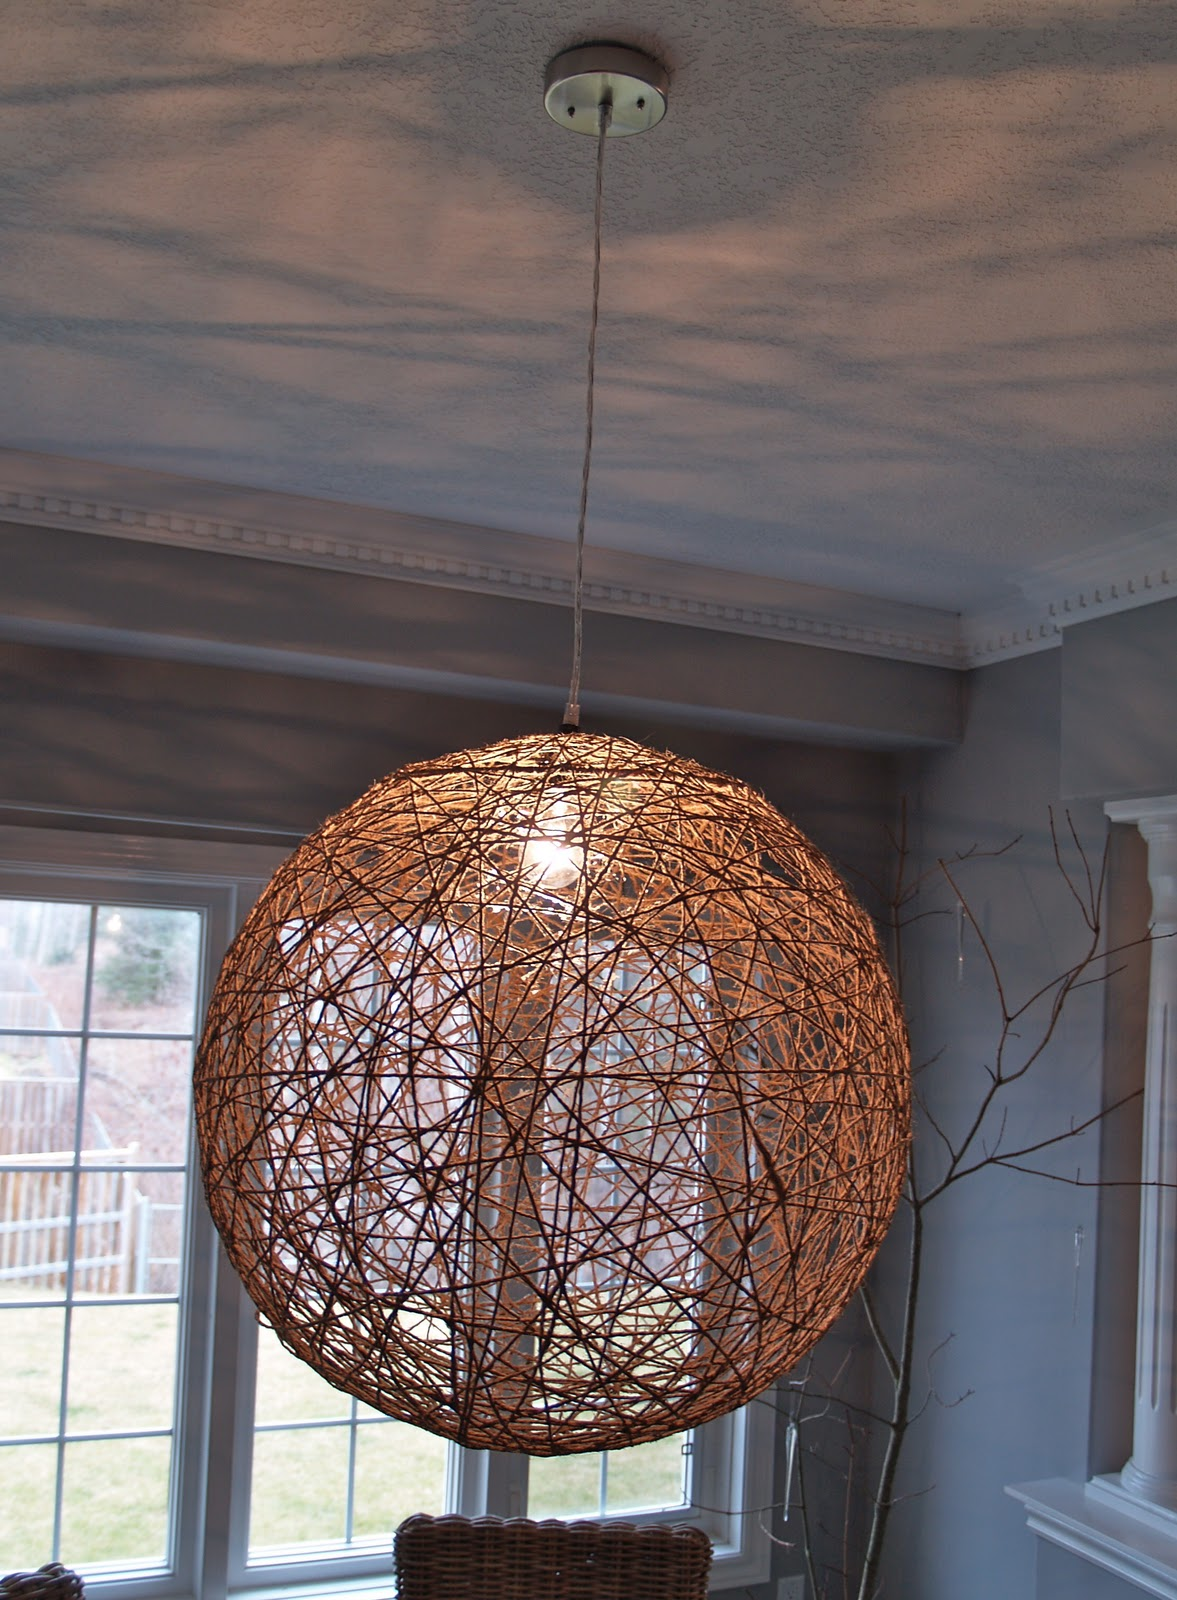 10 Rooms: A Lighting DIY: The New Chandelier